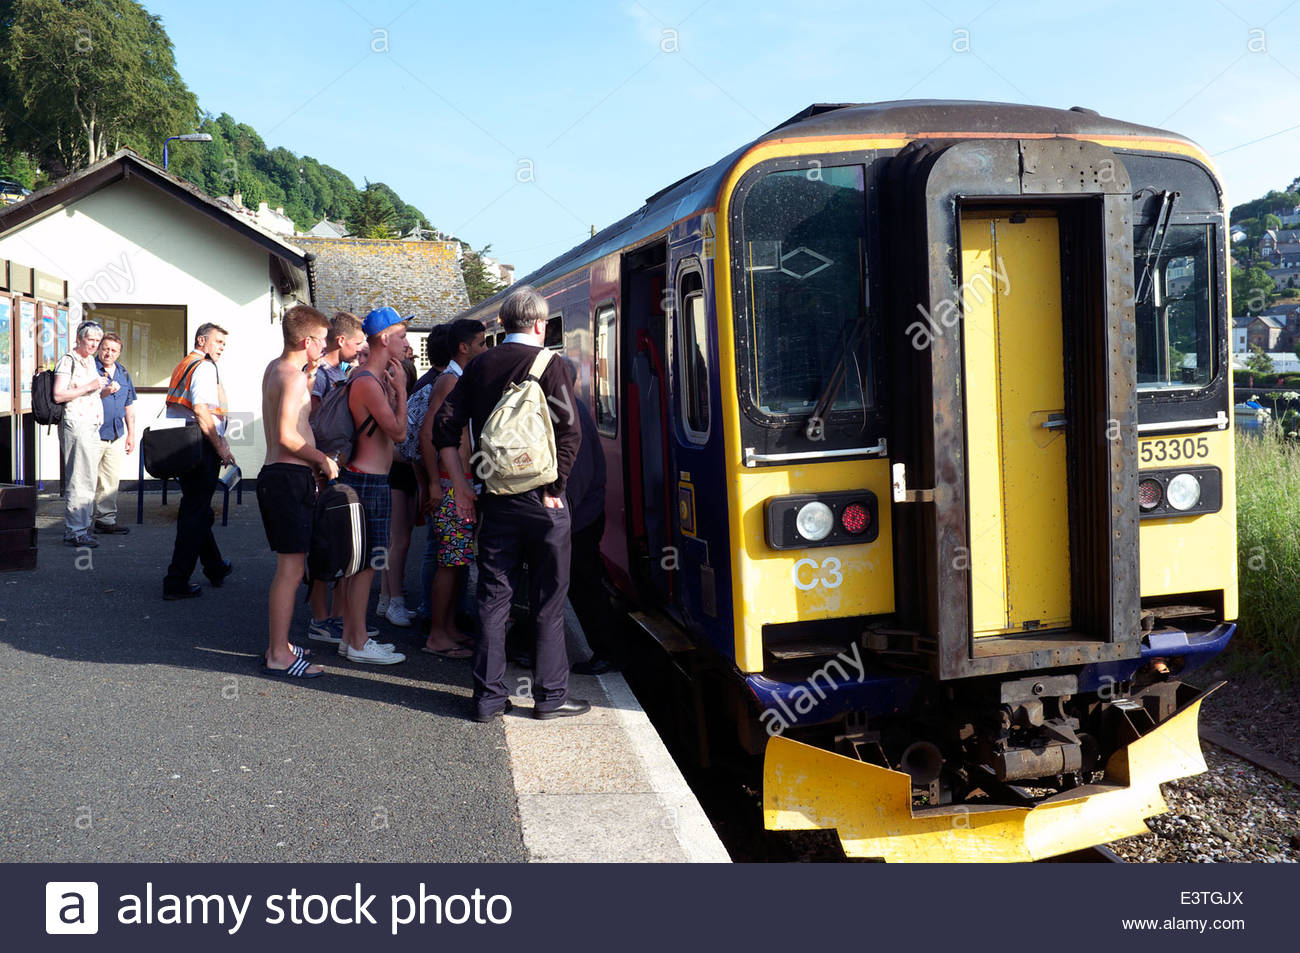 Looe Valley Line - passengers waiting to board the train at the end of the day, at Looe railway station in Cornwall, Stock Photo